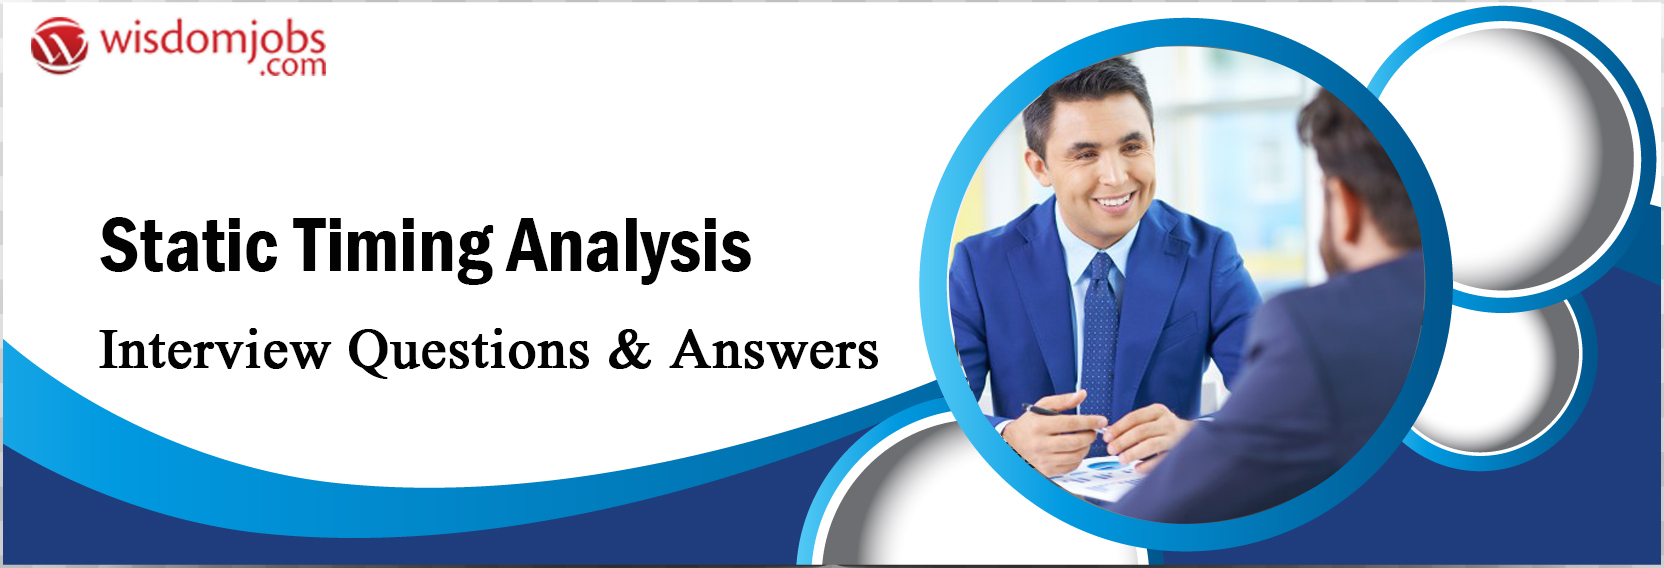 Static Timing Analysis Interview Questions & Answers